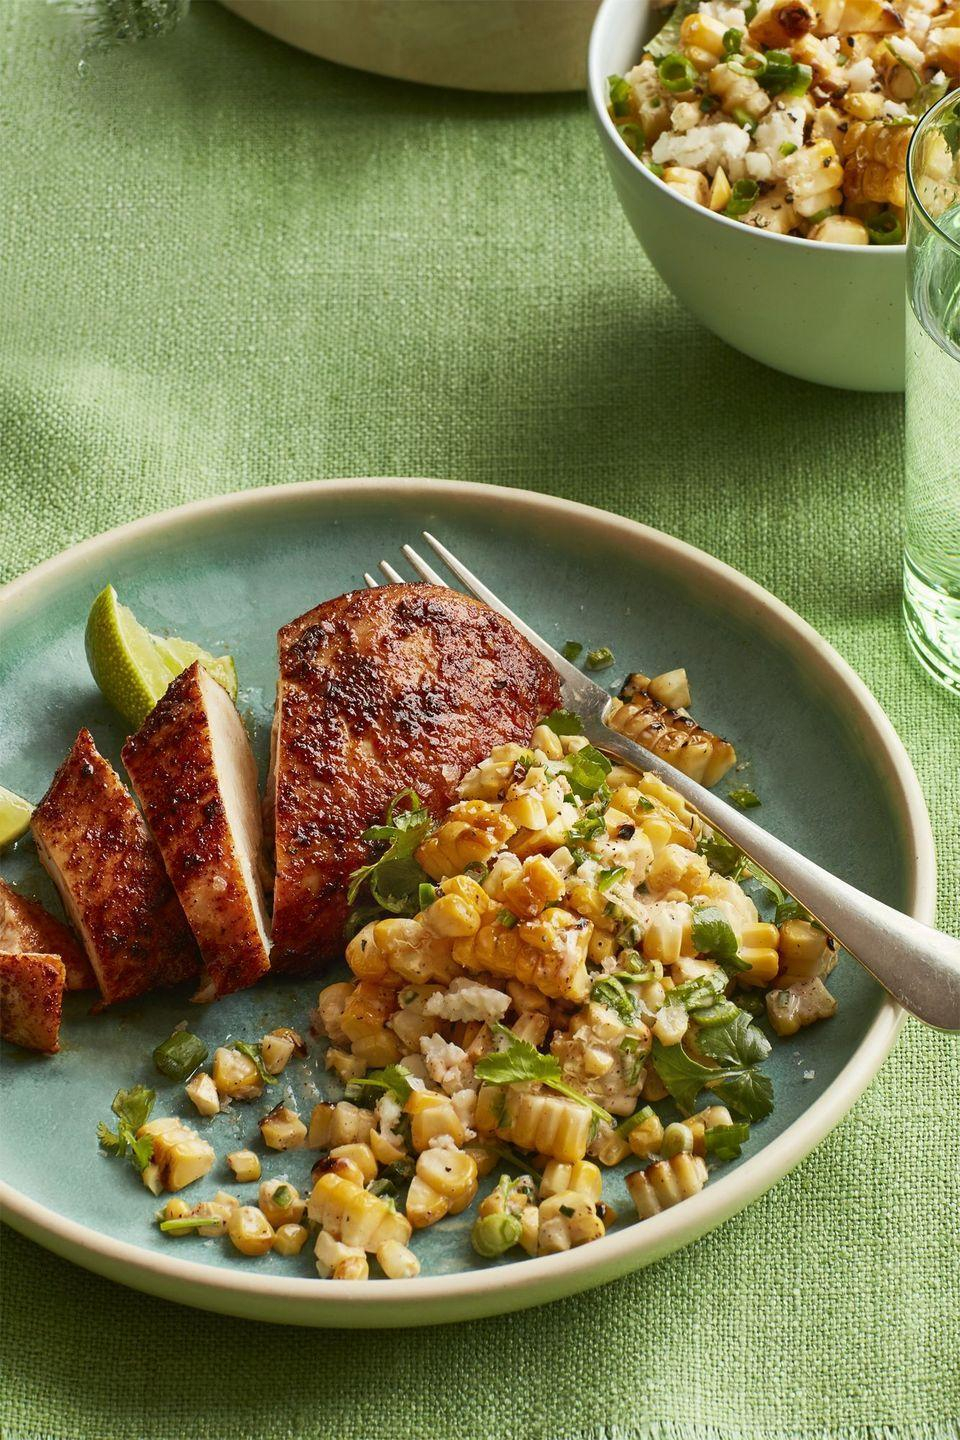 "<p>Nothing says southern comfort quite like some smoky chicken and roasted corn. The flavor combination of these two components will leave your taste buds singing.</p><p><em><a href=""https://www.womansday.com/food-recipes/food-drinks/recipes/a59416/smoky-chicken-charred-corn-salad-recipe/"" rel=""nofollow noopener"" target=""_blank"" data-ylk=""slk:Get the Smoky Chicken with Charred-Corn Salad recipe."" class=""link rapid-noclick-resp"">Get the Smoky Chicken with Charred-Corn Salad recipe.</a></em></p><p><strong>RELATED: </strong><a href=""https://www.womansday.com/food-recipes/food-drinks/g3165/best-comfort-food-recipes/"" rel=""nofollow noopener"" target=""_blank"" data-ylk=""slk:20 Simple Comfort Food Recipes for a Cozy Night at Home"" class=""link rapid-noclick-resp"">20 Simple Comfort Food Recipes for a Cozy Night at Home</a></p>"